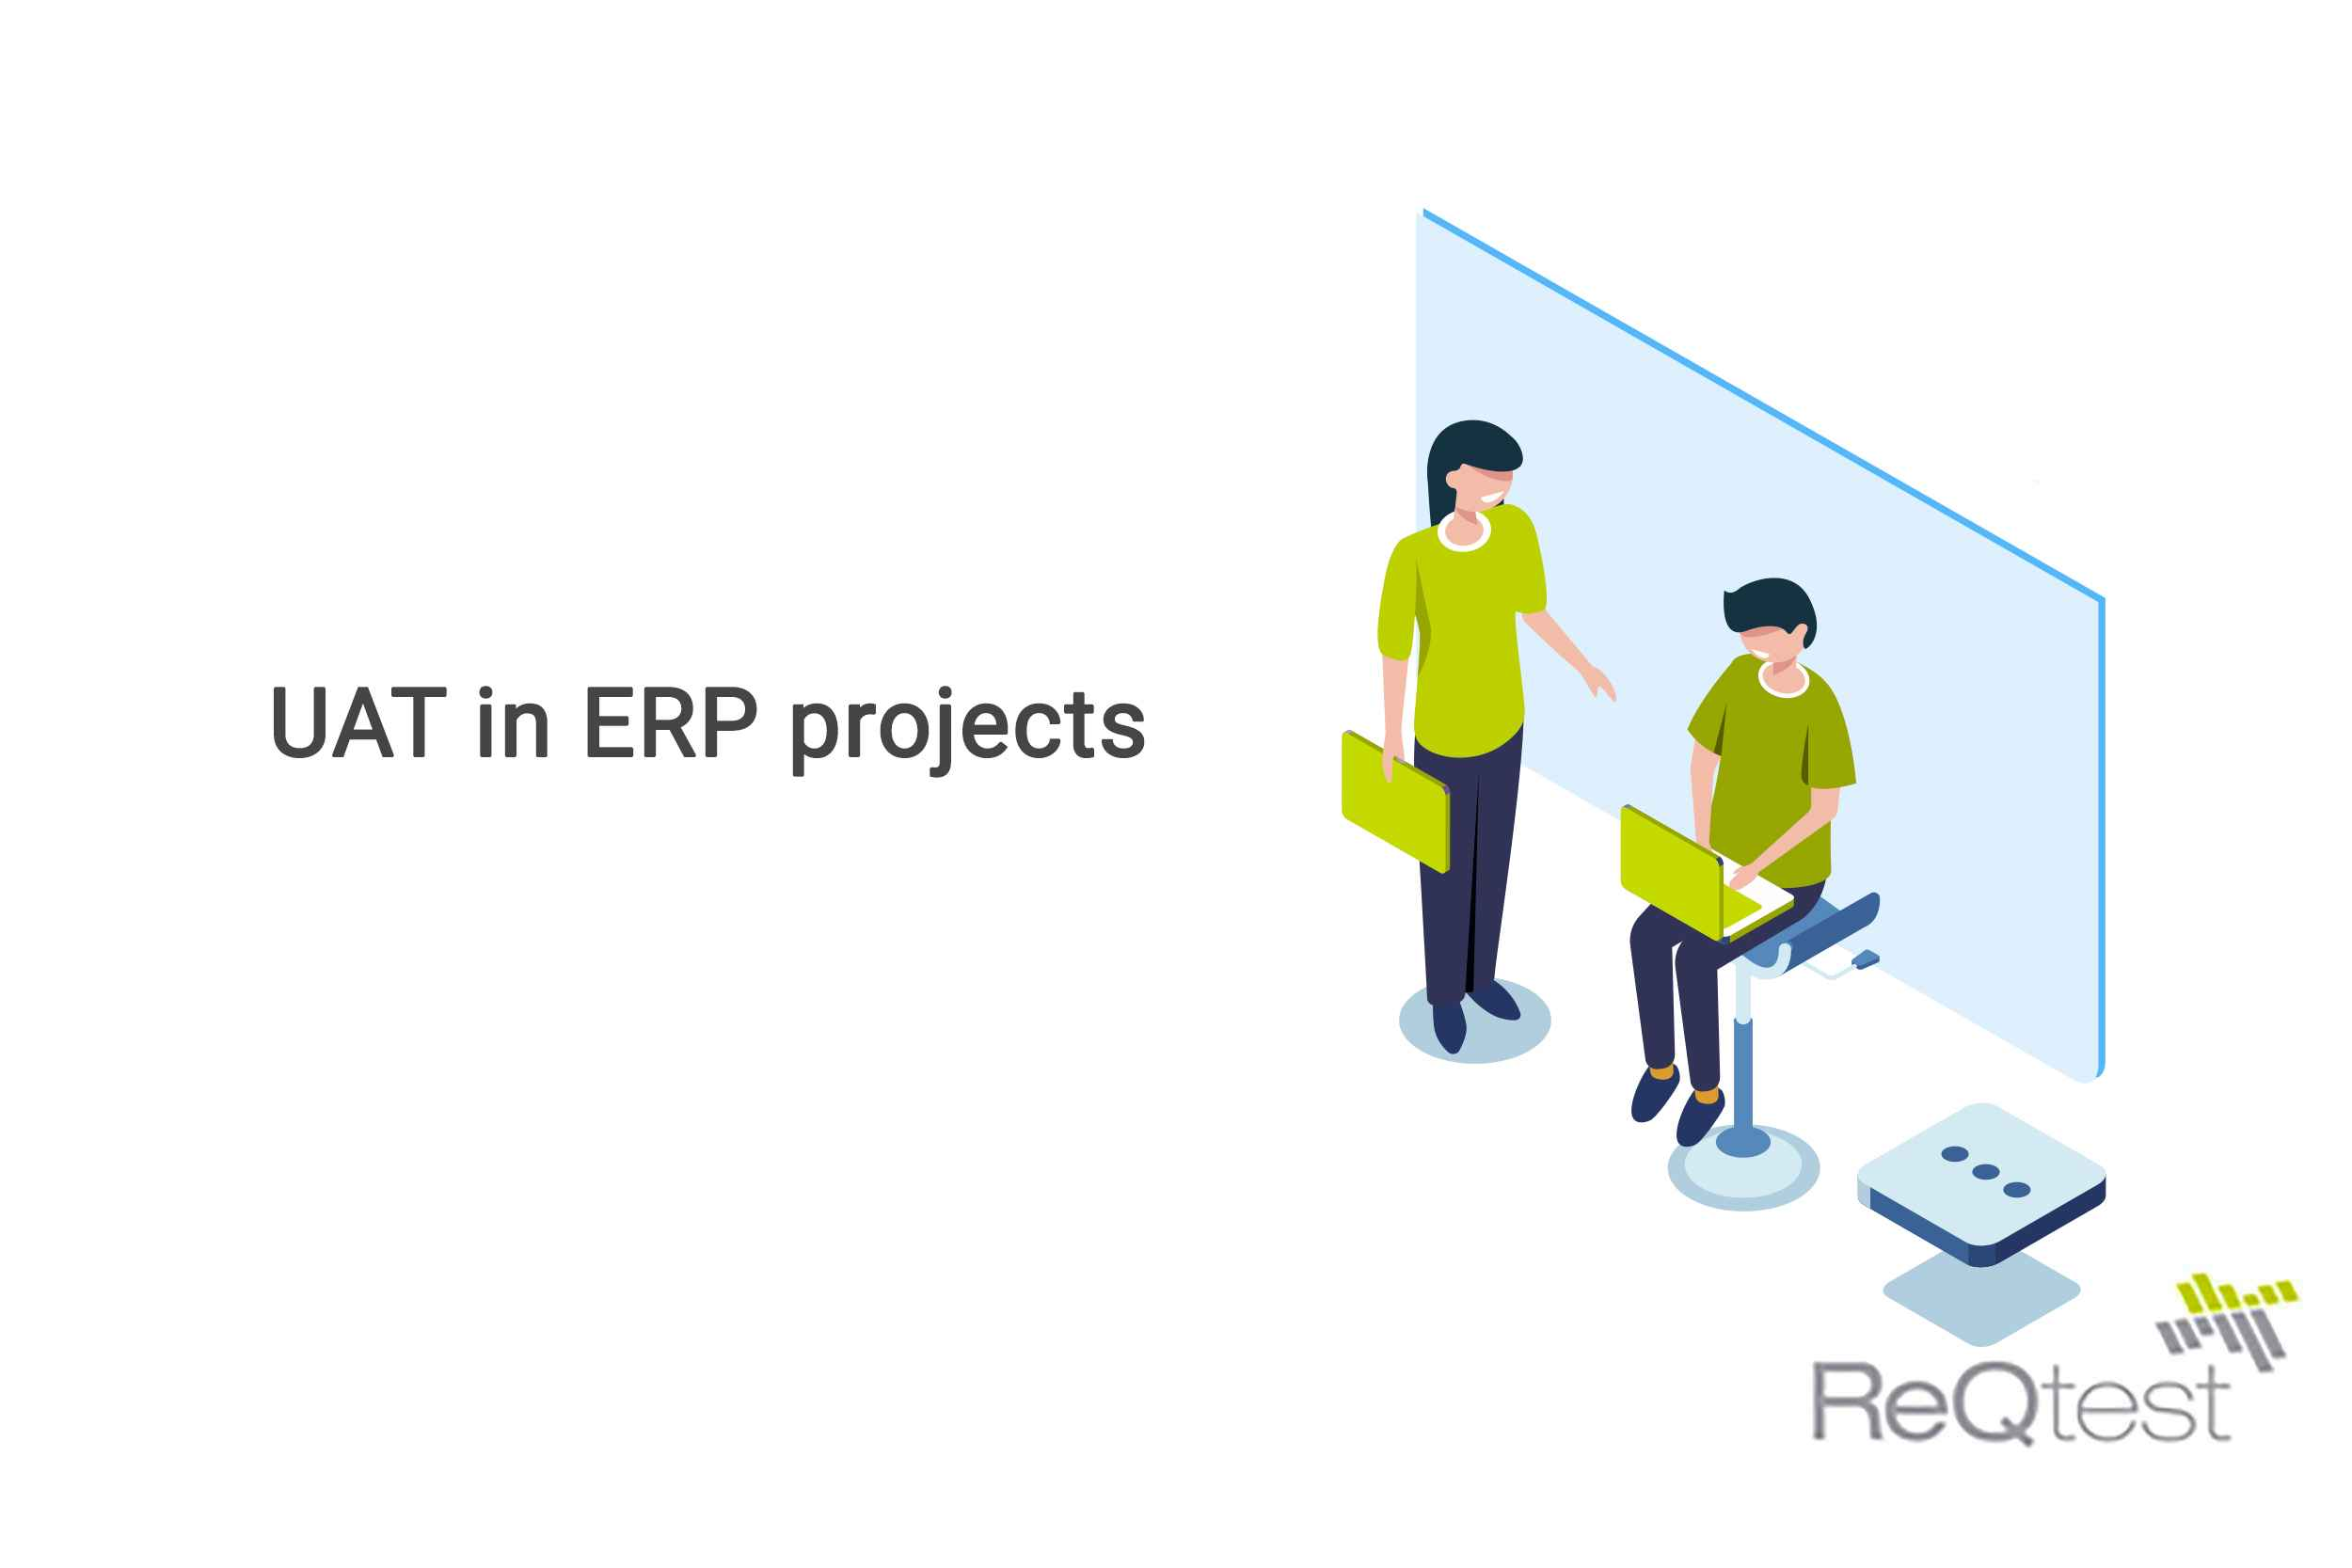 UAT in ERP projects